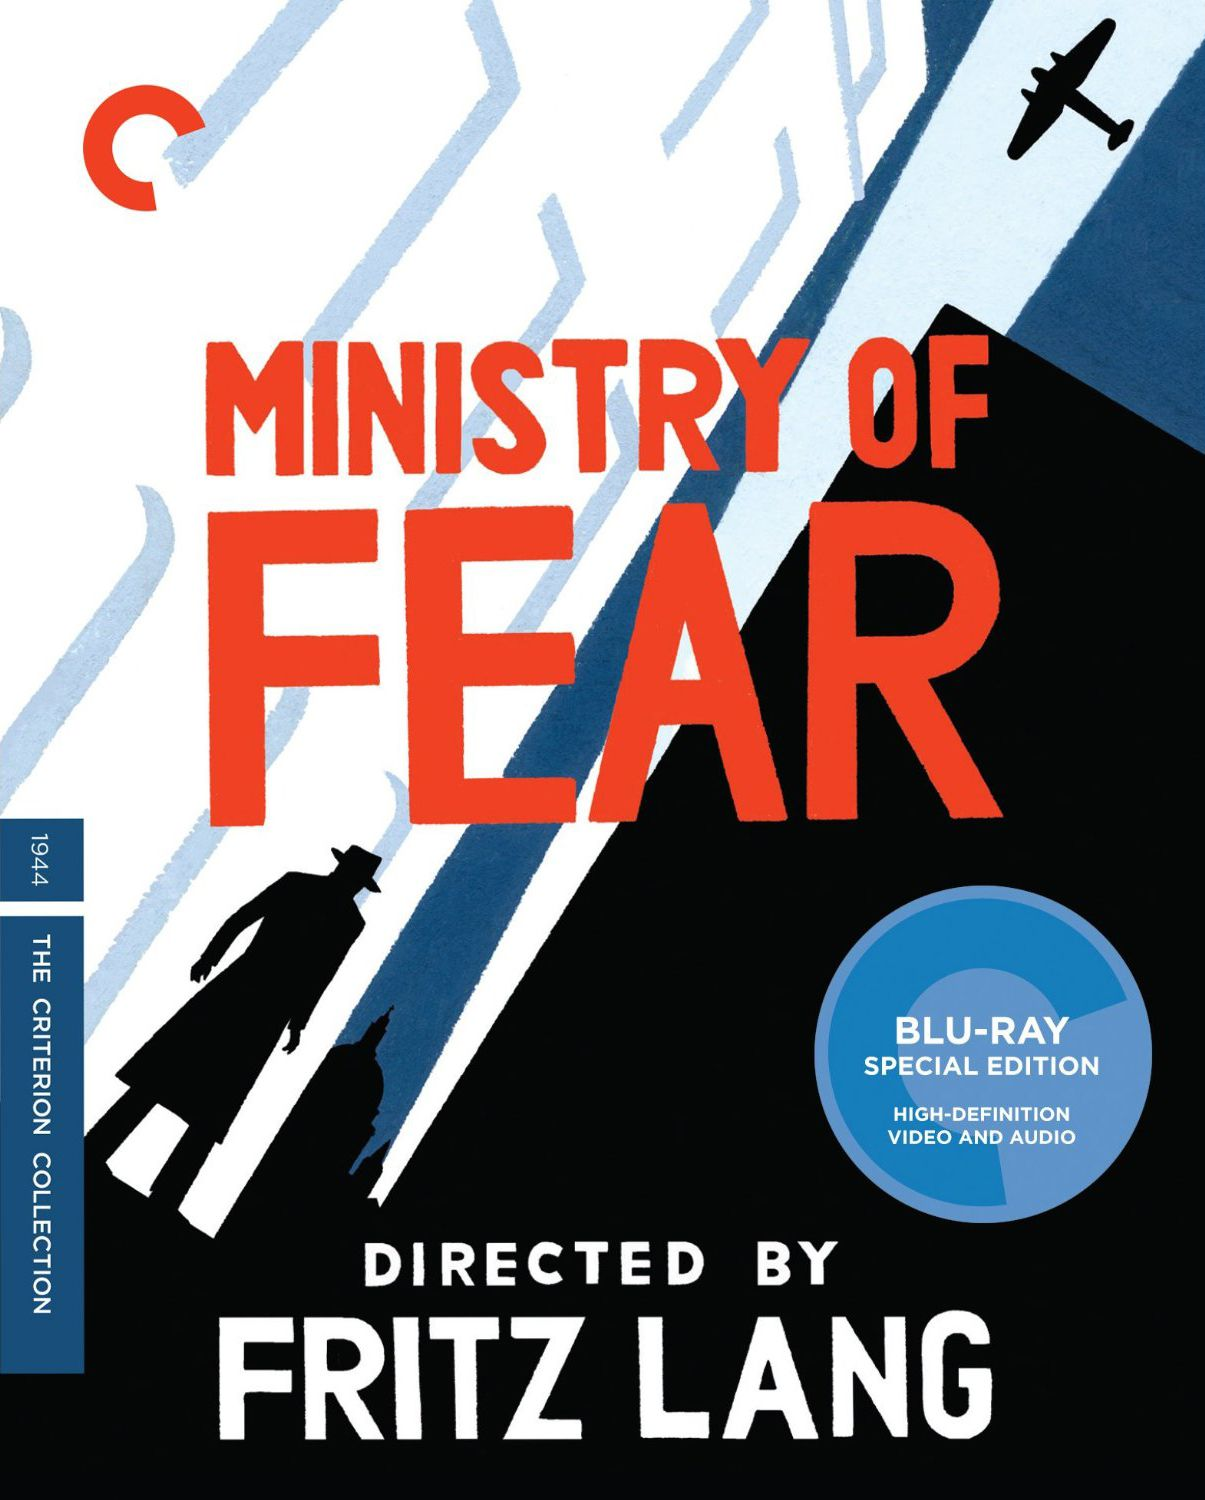 ministry of fear blu ray review slant magazine